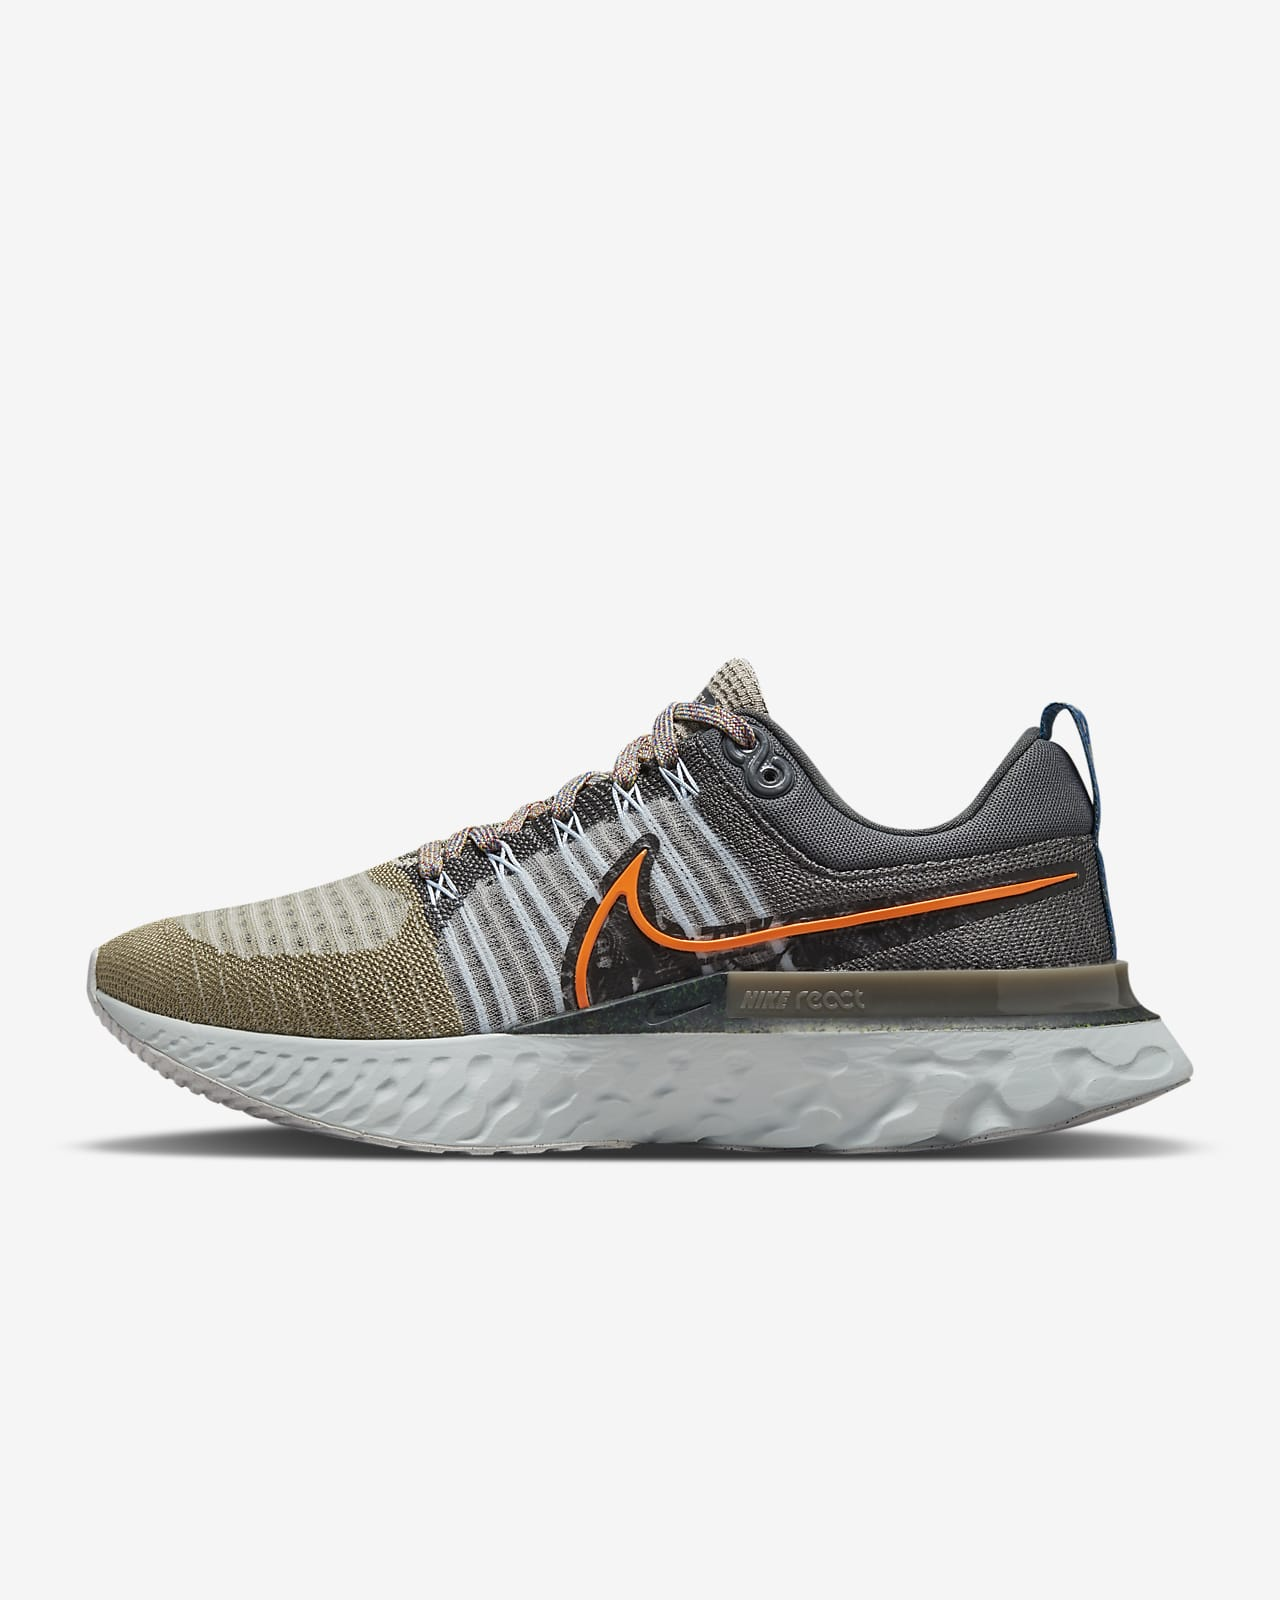 Chaussure de running sur route Nike React Infinity Run Flyknit2 pour Homme